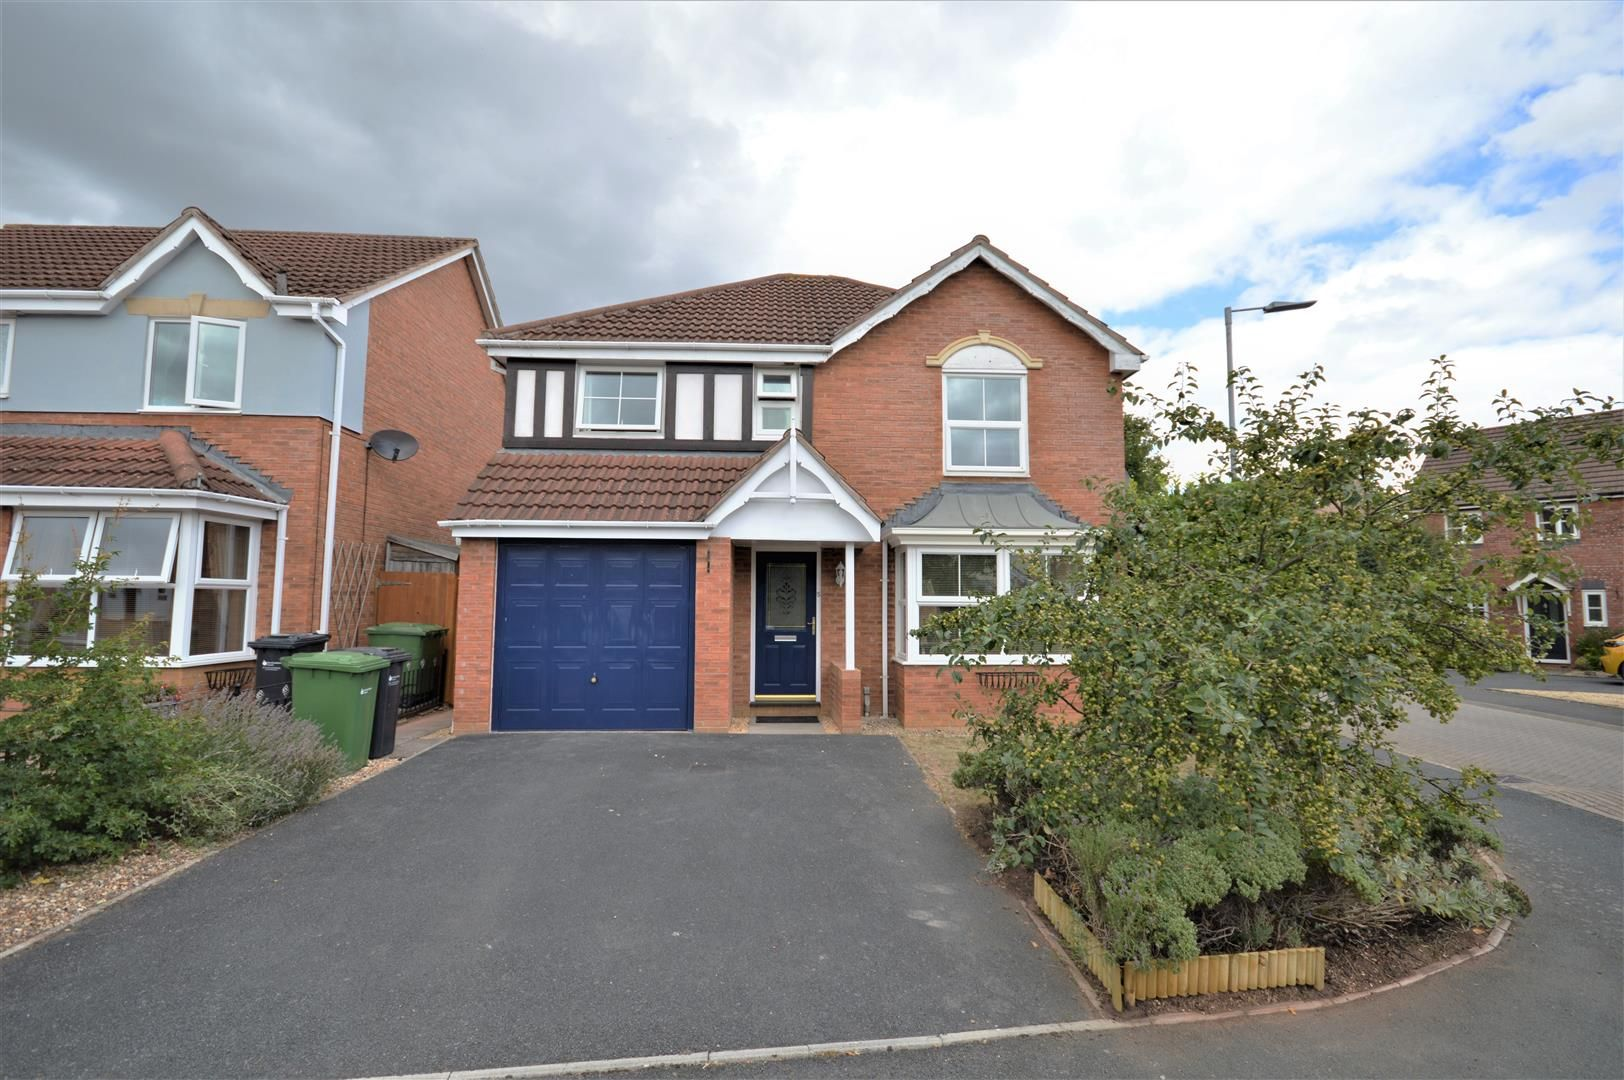 4 bed detached for sale in Belmont  - Property Image 1